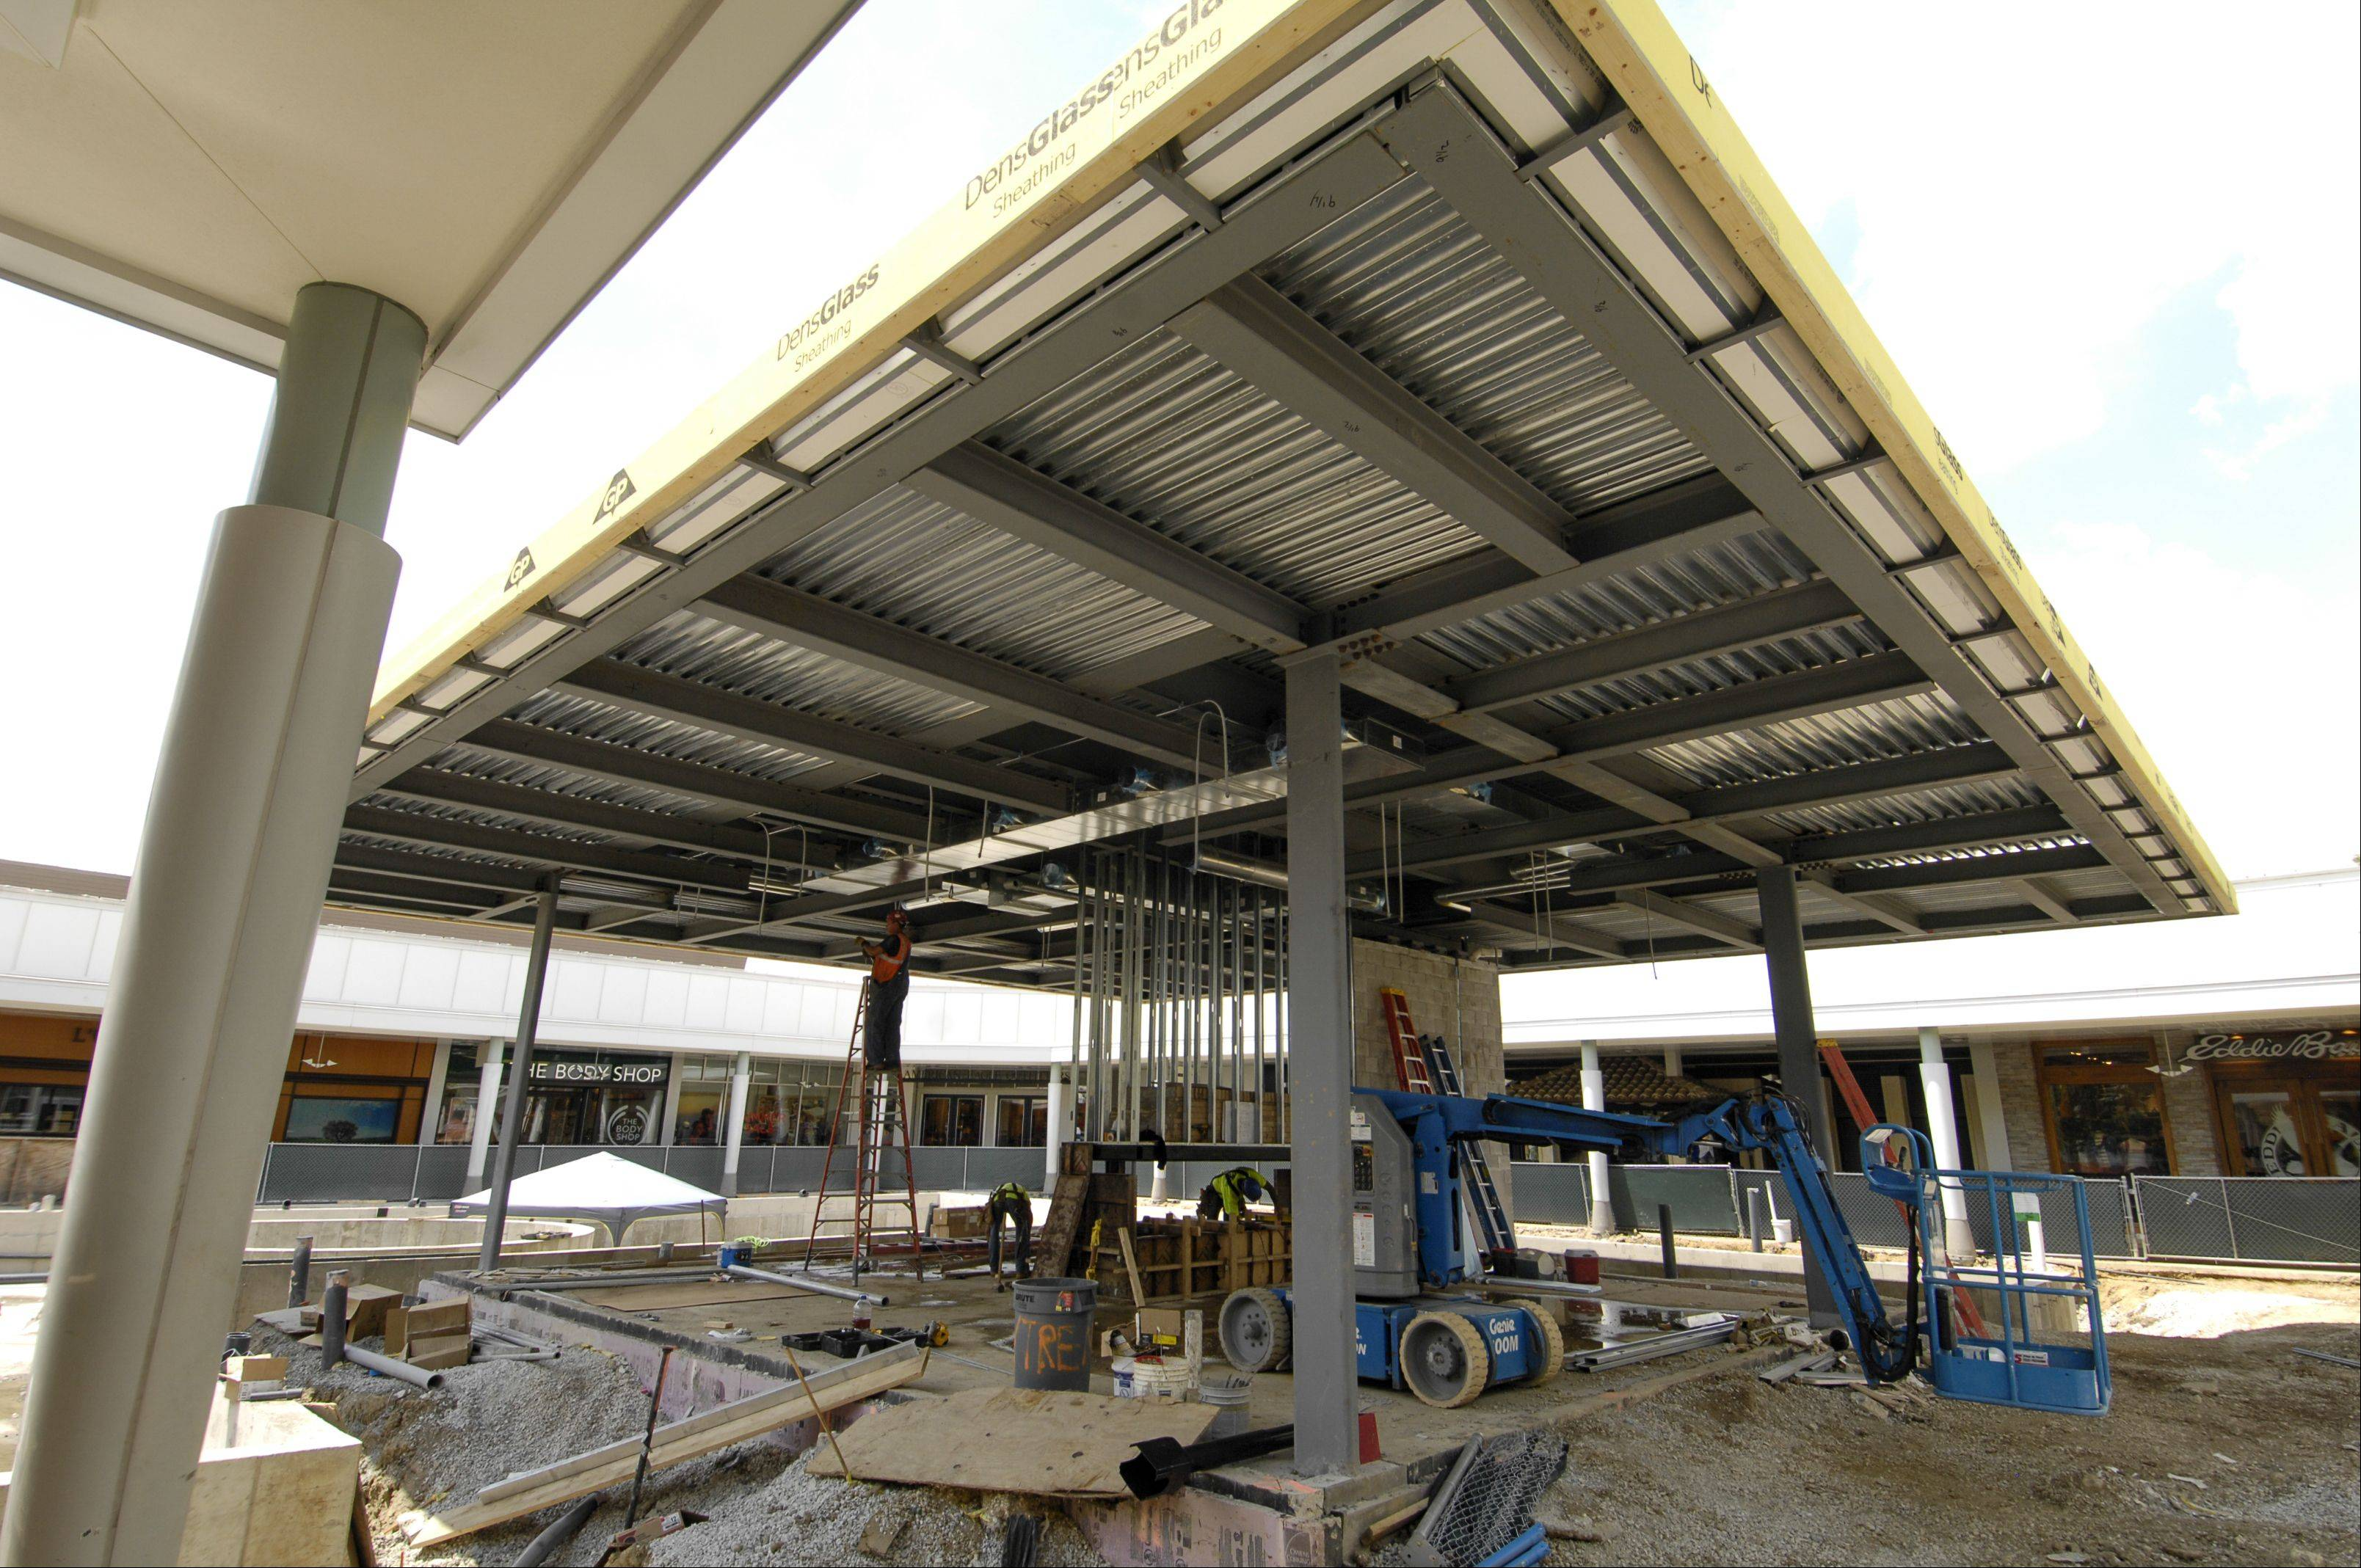 The new amenities pavilion will be used in both the summer and winter when renovations are finished.